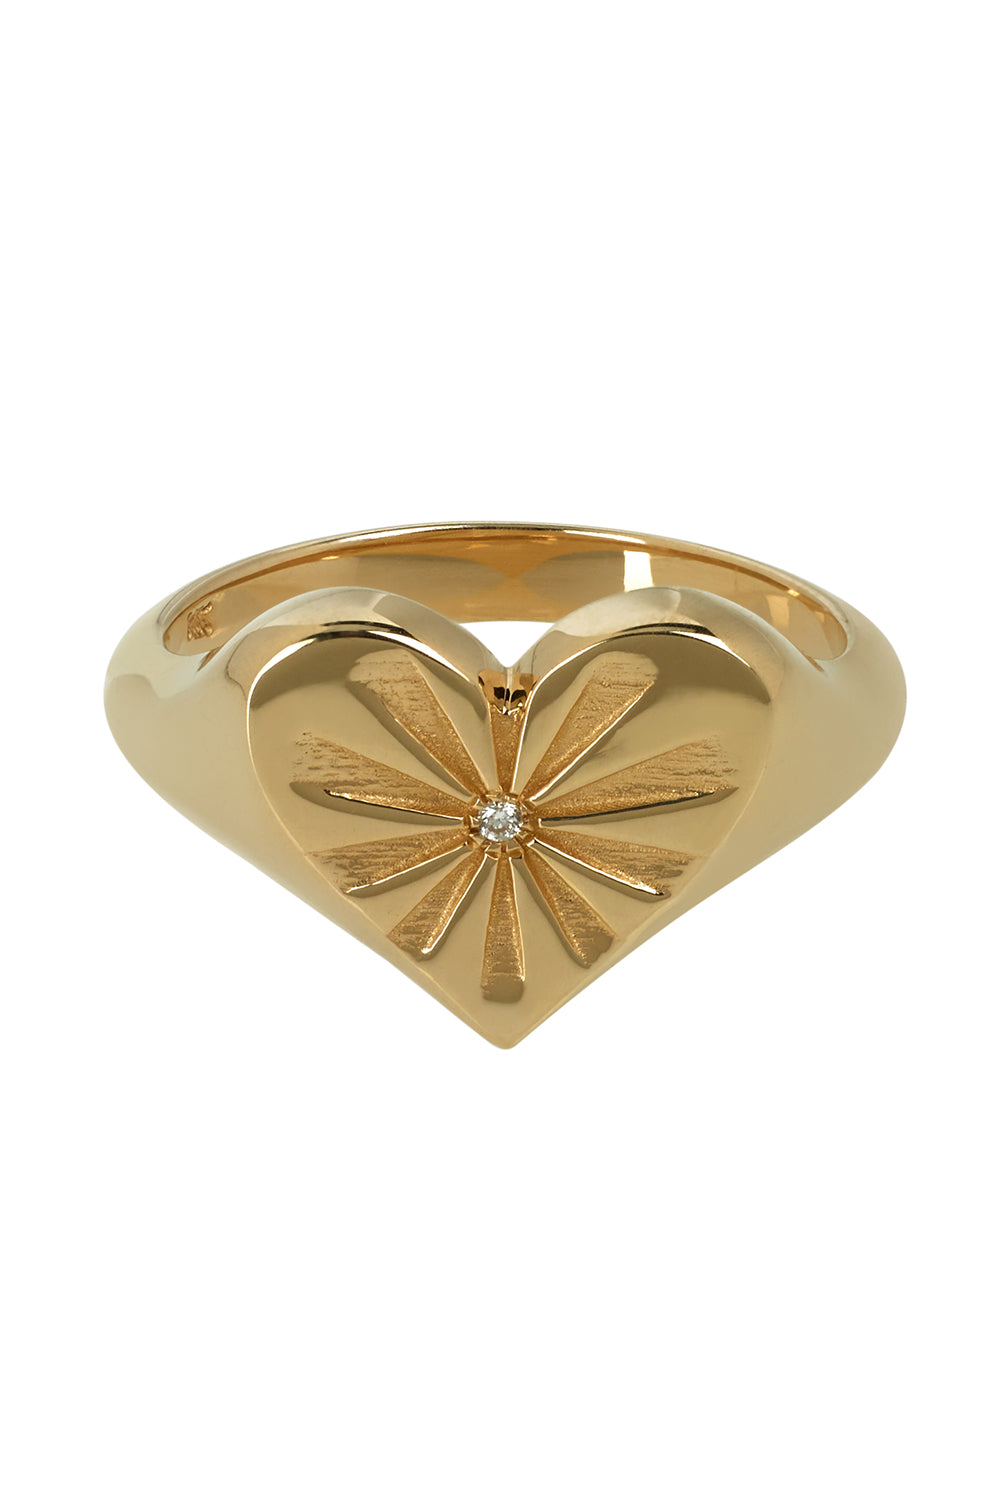 Heart Pinky Yellow Gold Ring with White Diamond